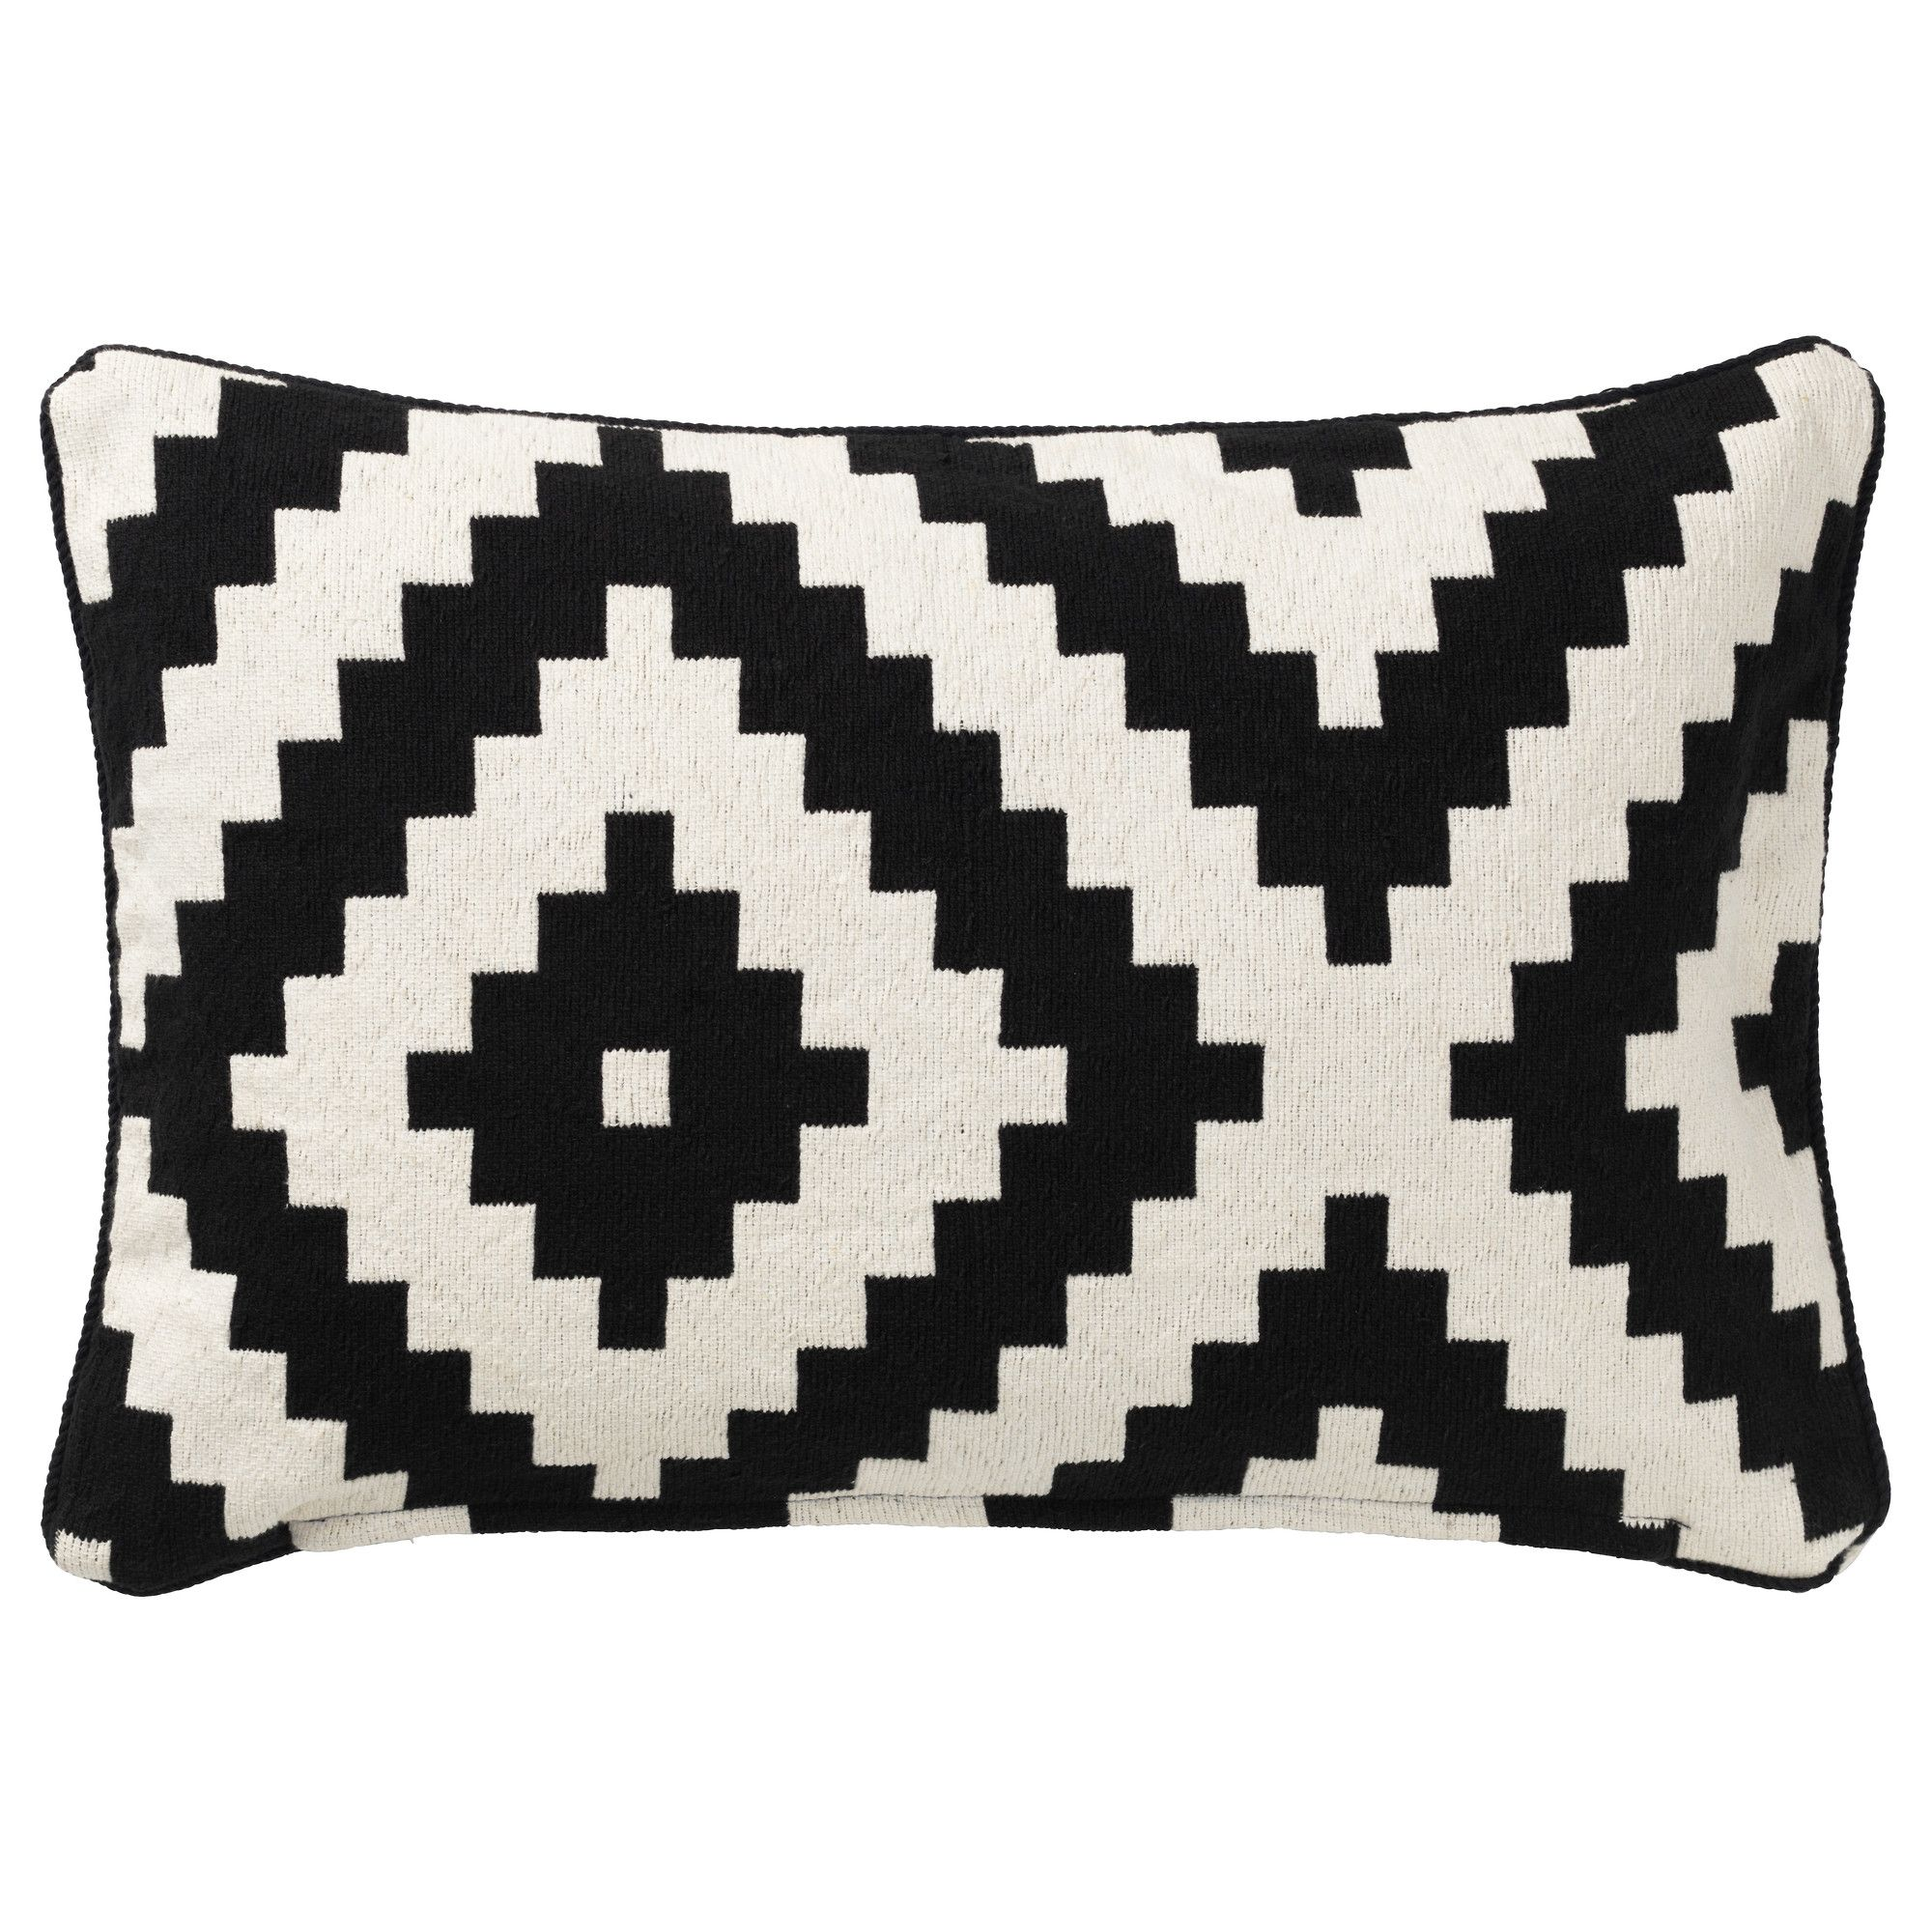 Lljung Ruta Cushion Cover Ikea Playroom Pillow For My Lumbar In White Chair